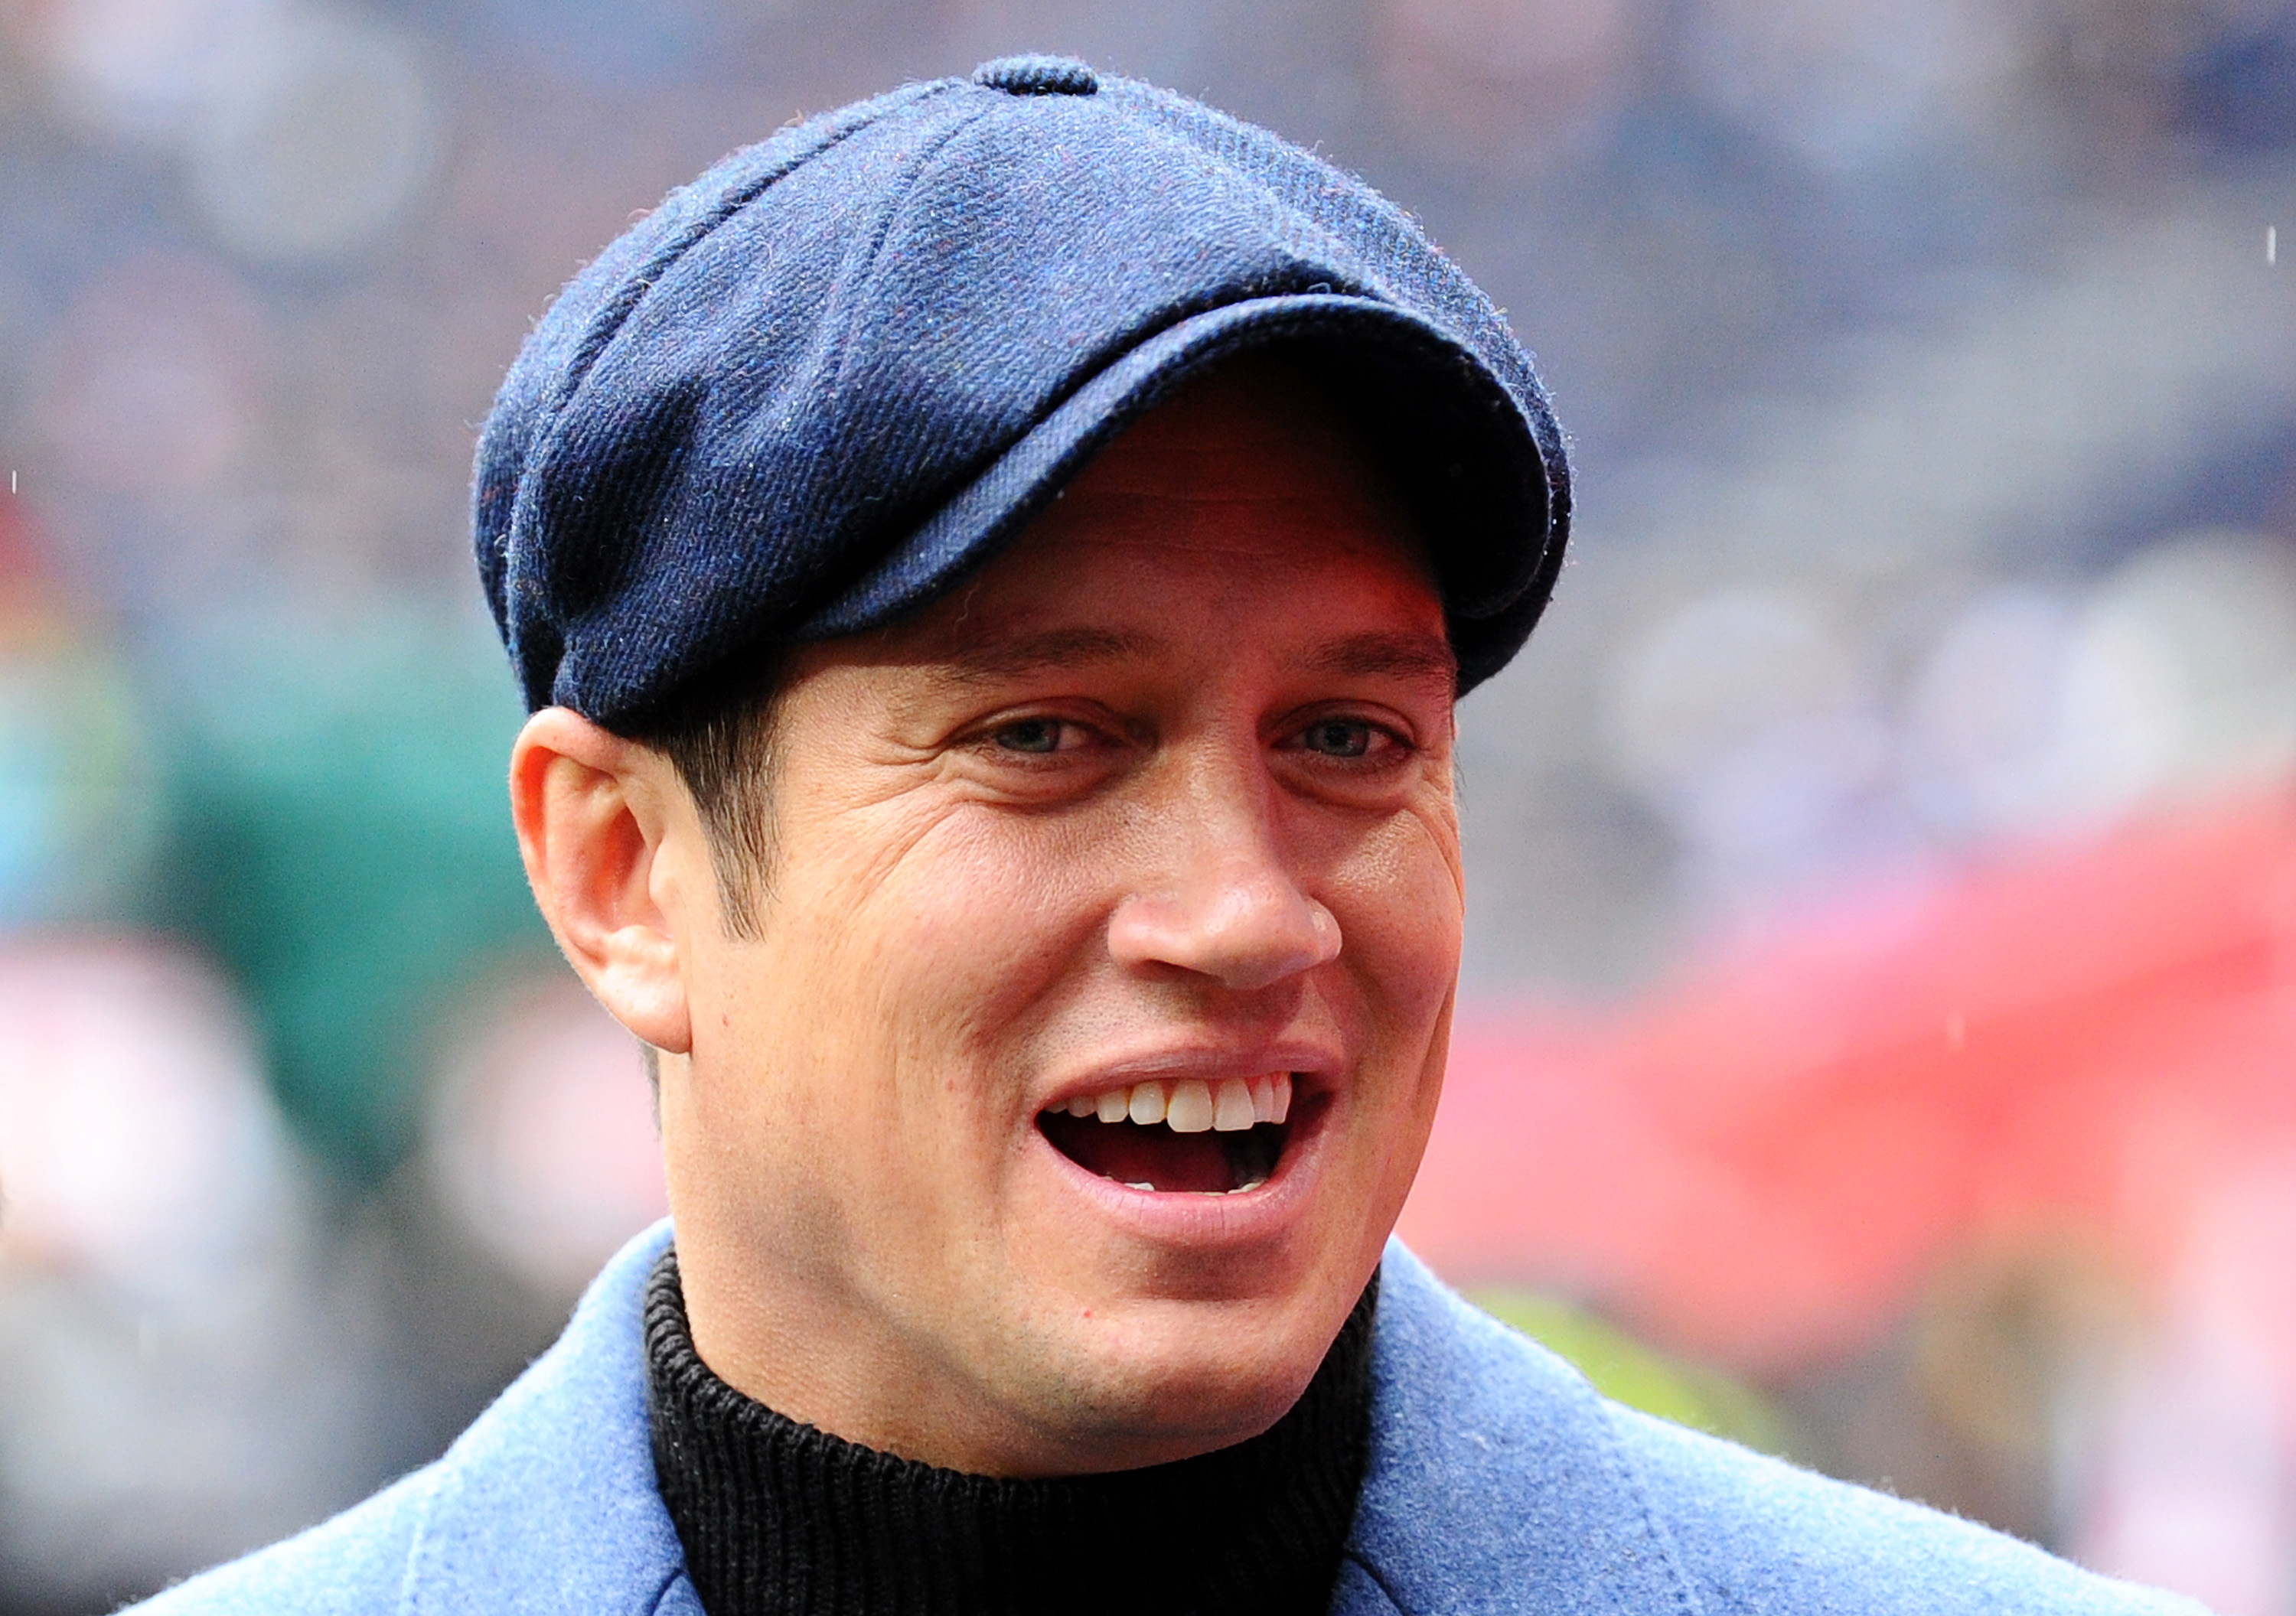 Vernon Kay looks on pitch-side prior to the NFL match between the Carolina Panthers and Tampa Bay Buccaneers at Tottenham Hotspur Stadium on October 13, 2019 in London, England. (Photo by Alex Burstow/Getty Images)